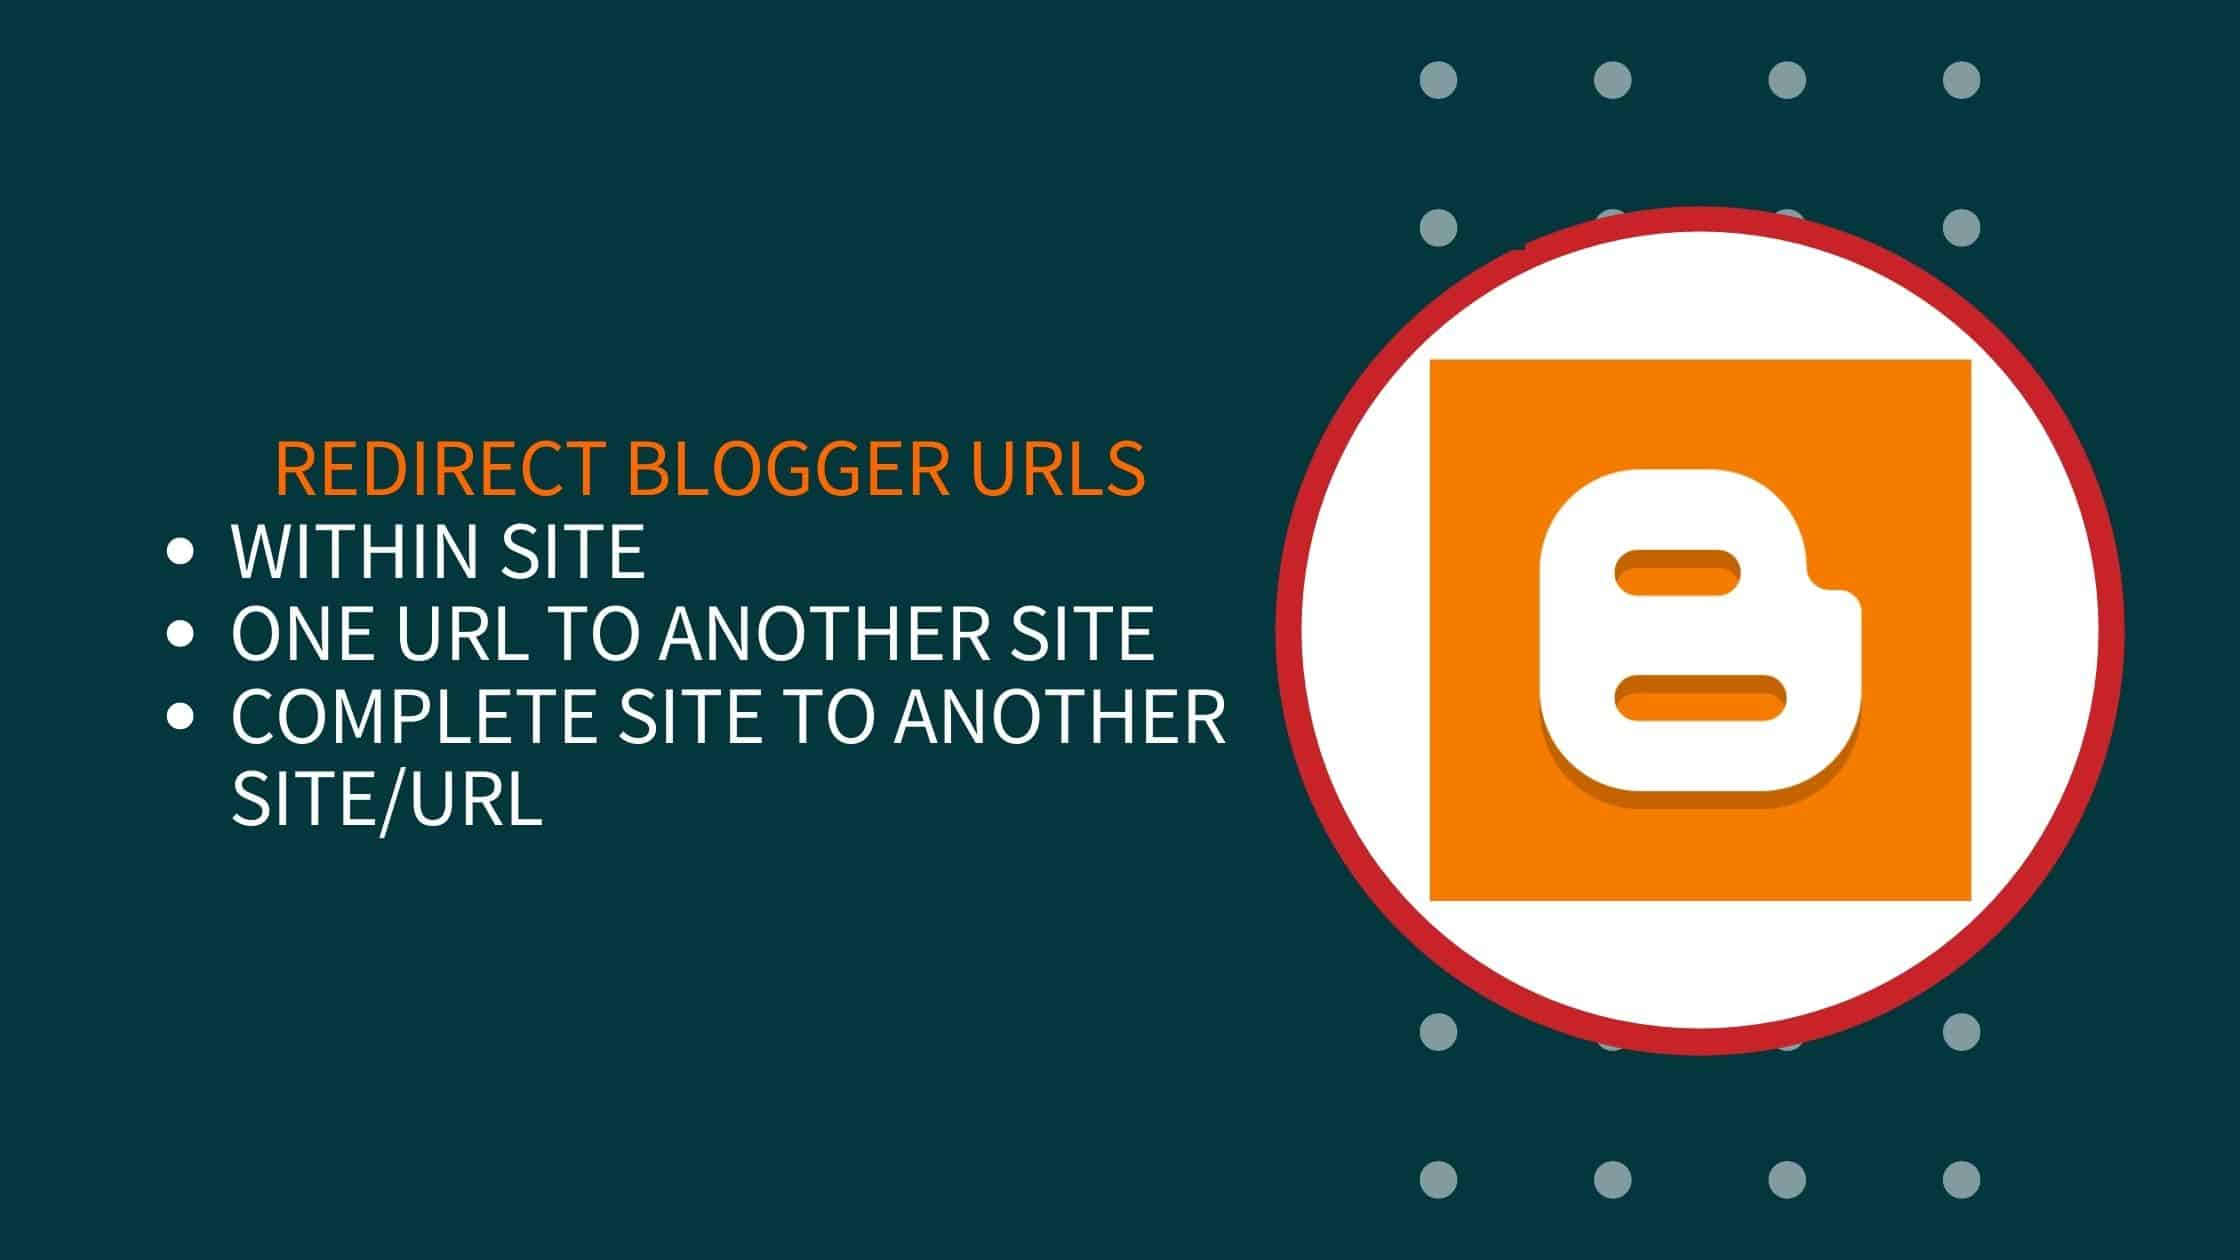 How To Redirect Blogger URLs To Another Website/Within Site?